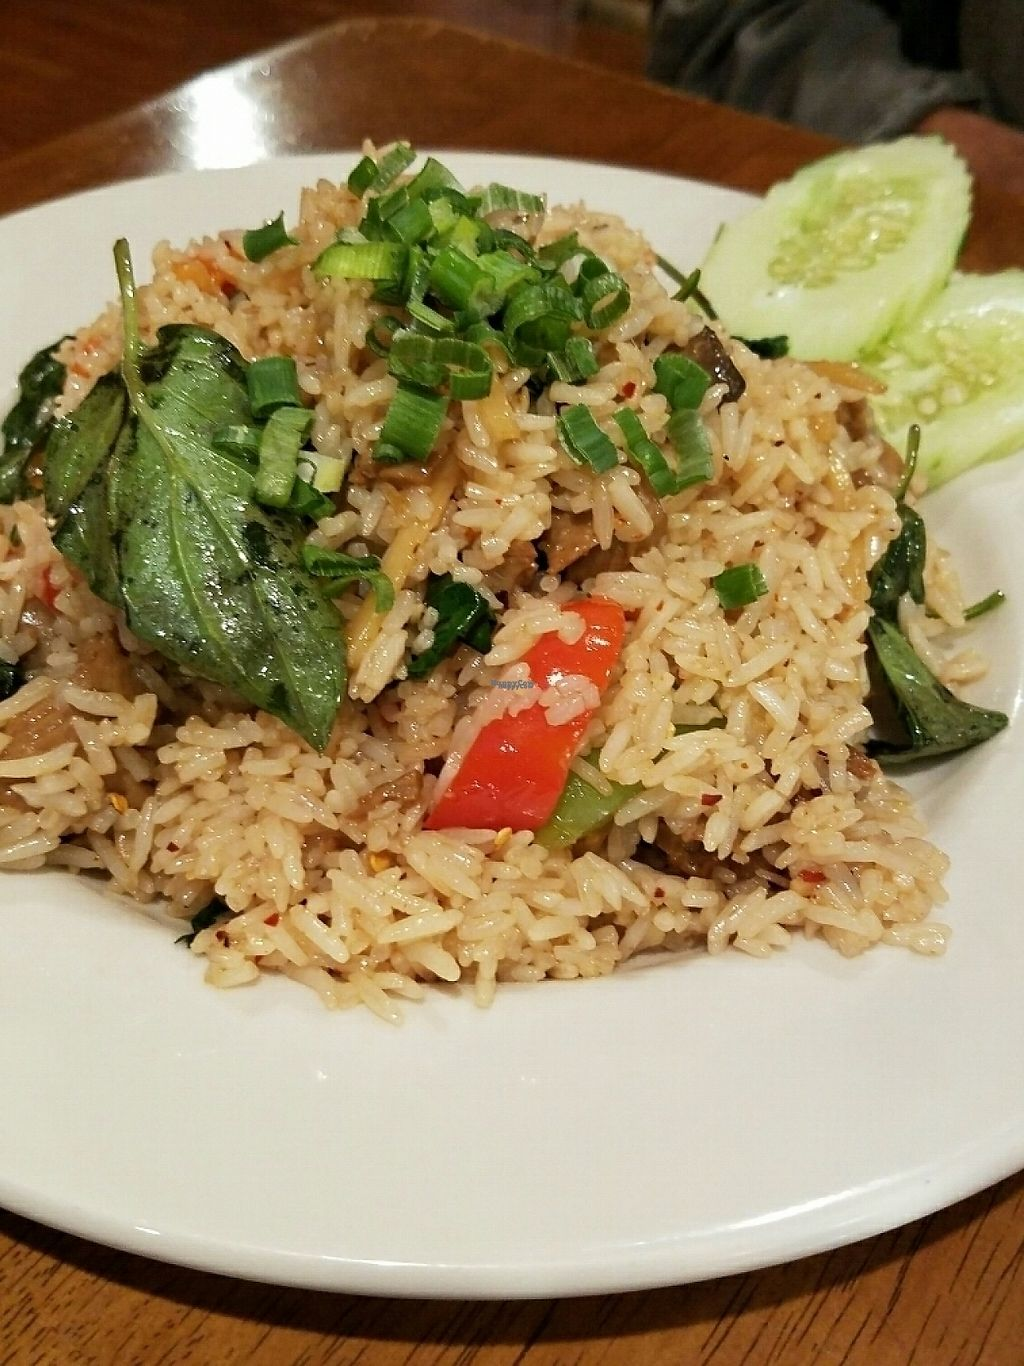 "Photo of Tiny Thai Restaurant  by <a href=""/members/profile/andreathinks"">andreathinks</a> <br/>Basil Fried Rice with Tofu <br/> November 14, 2016  - <a href='/contact/abuse/image/82698/189829'>Report</a>"